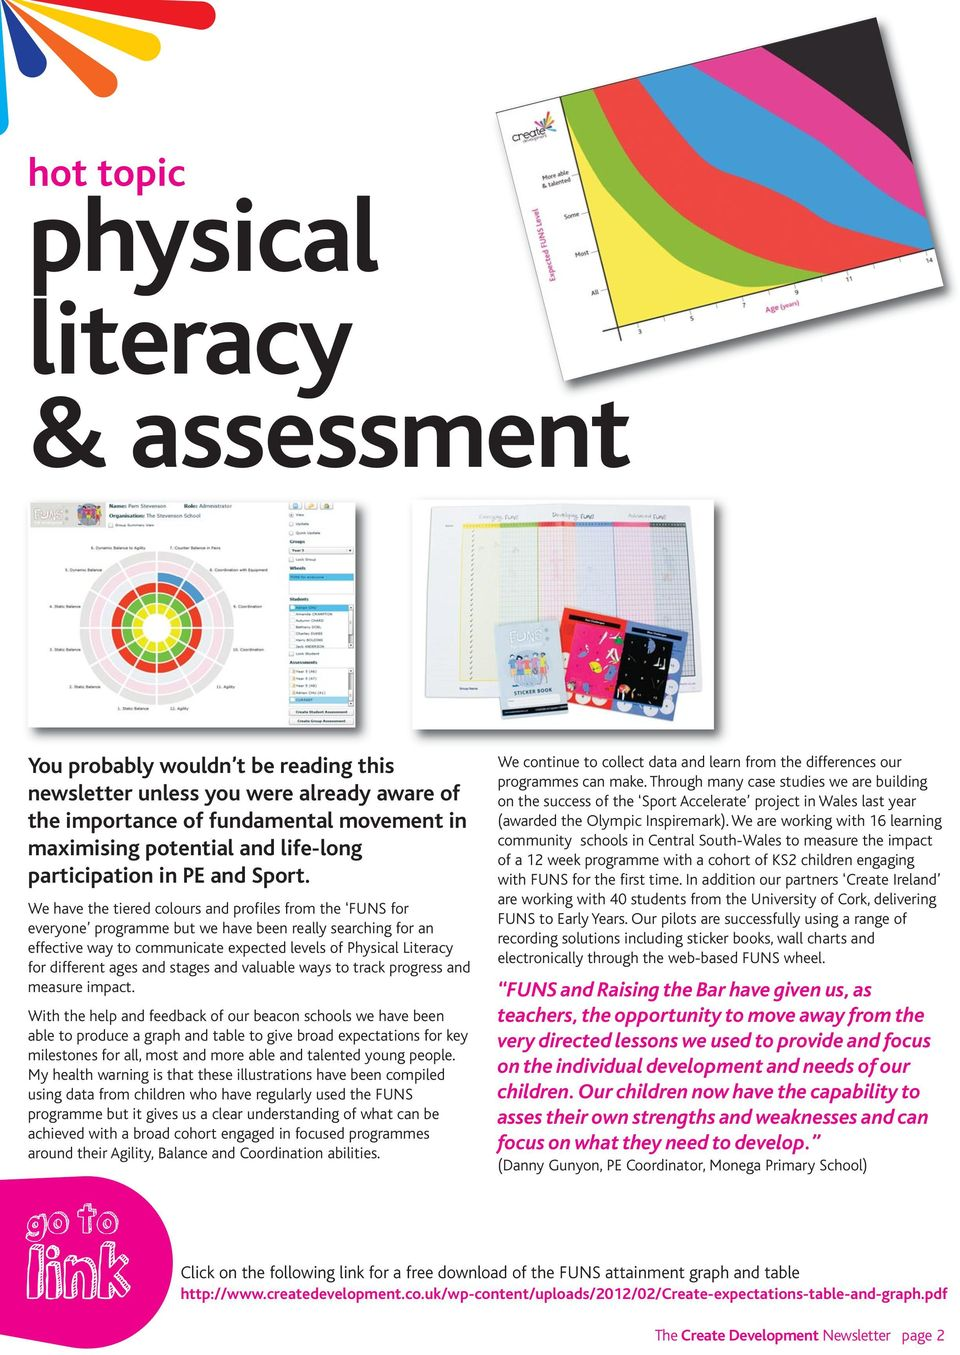 We have the tiered colours and profiles from the FUNS for everyone programme but we have been really searching for an effective way to communicate expected levels of Physical Literacy for different